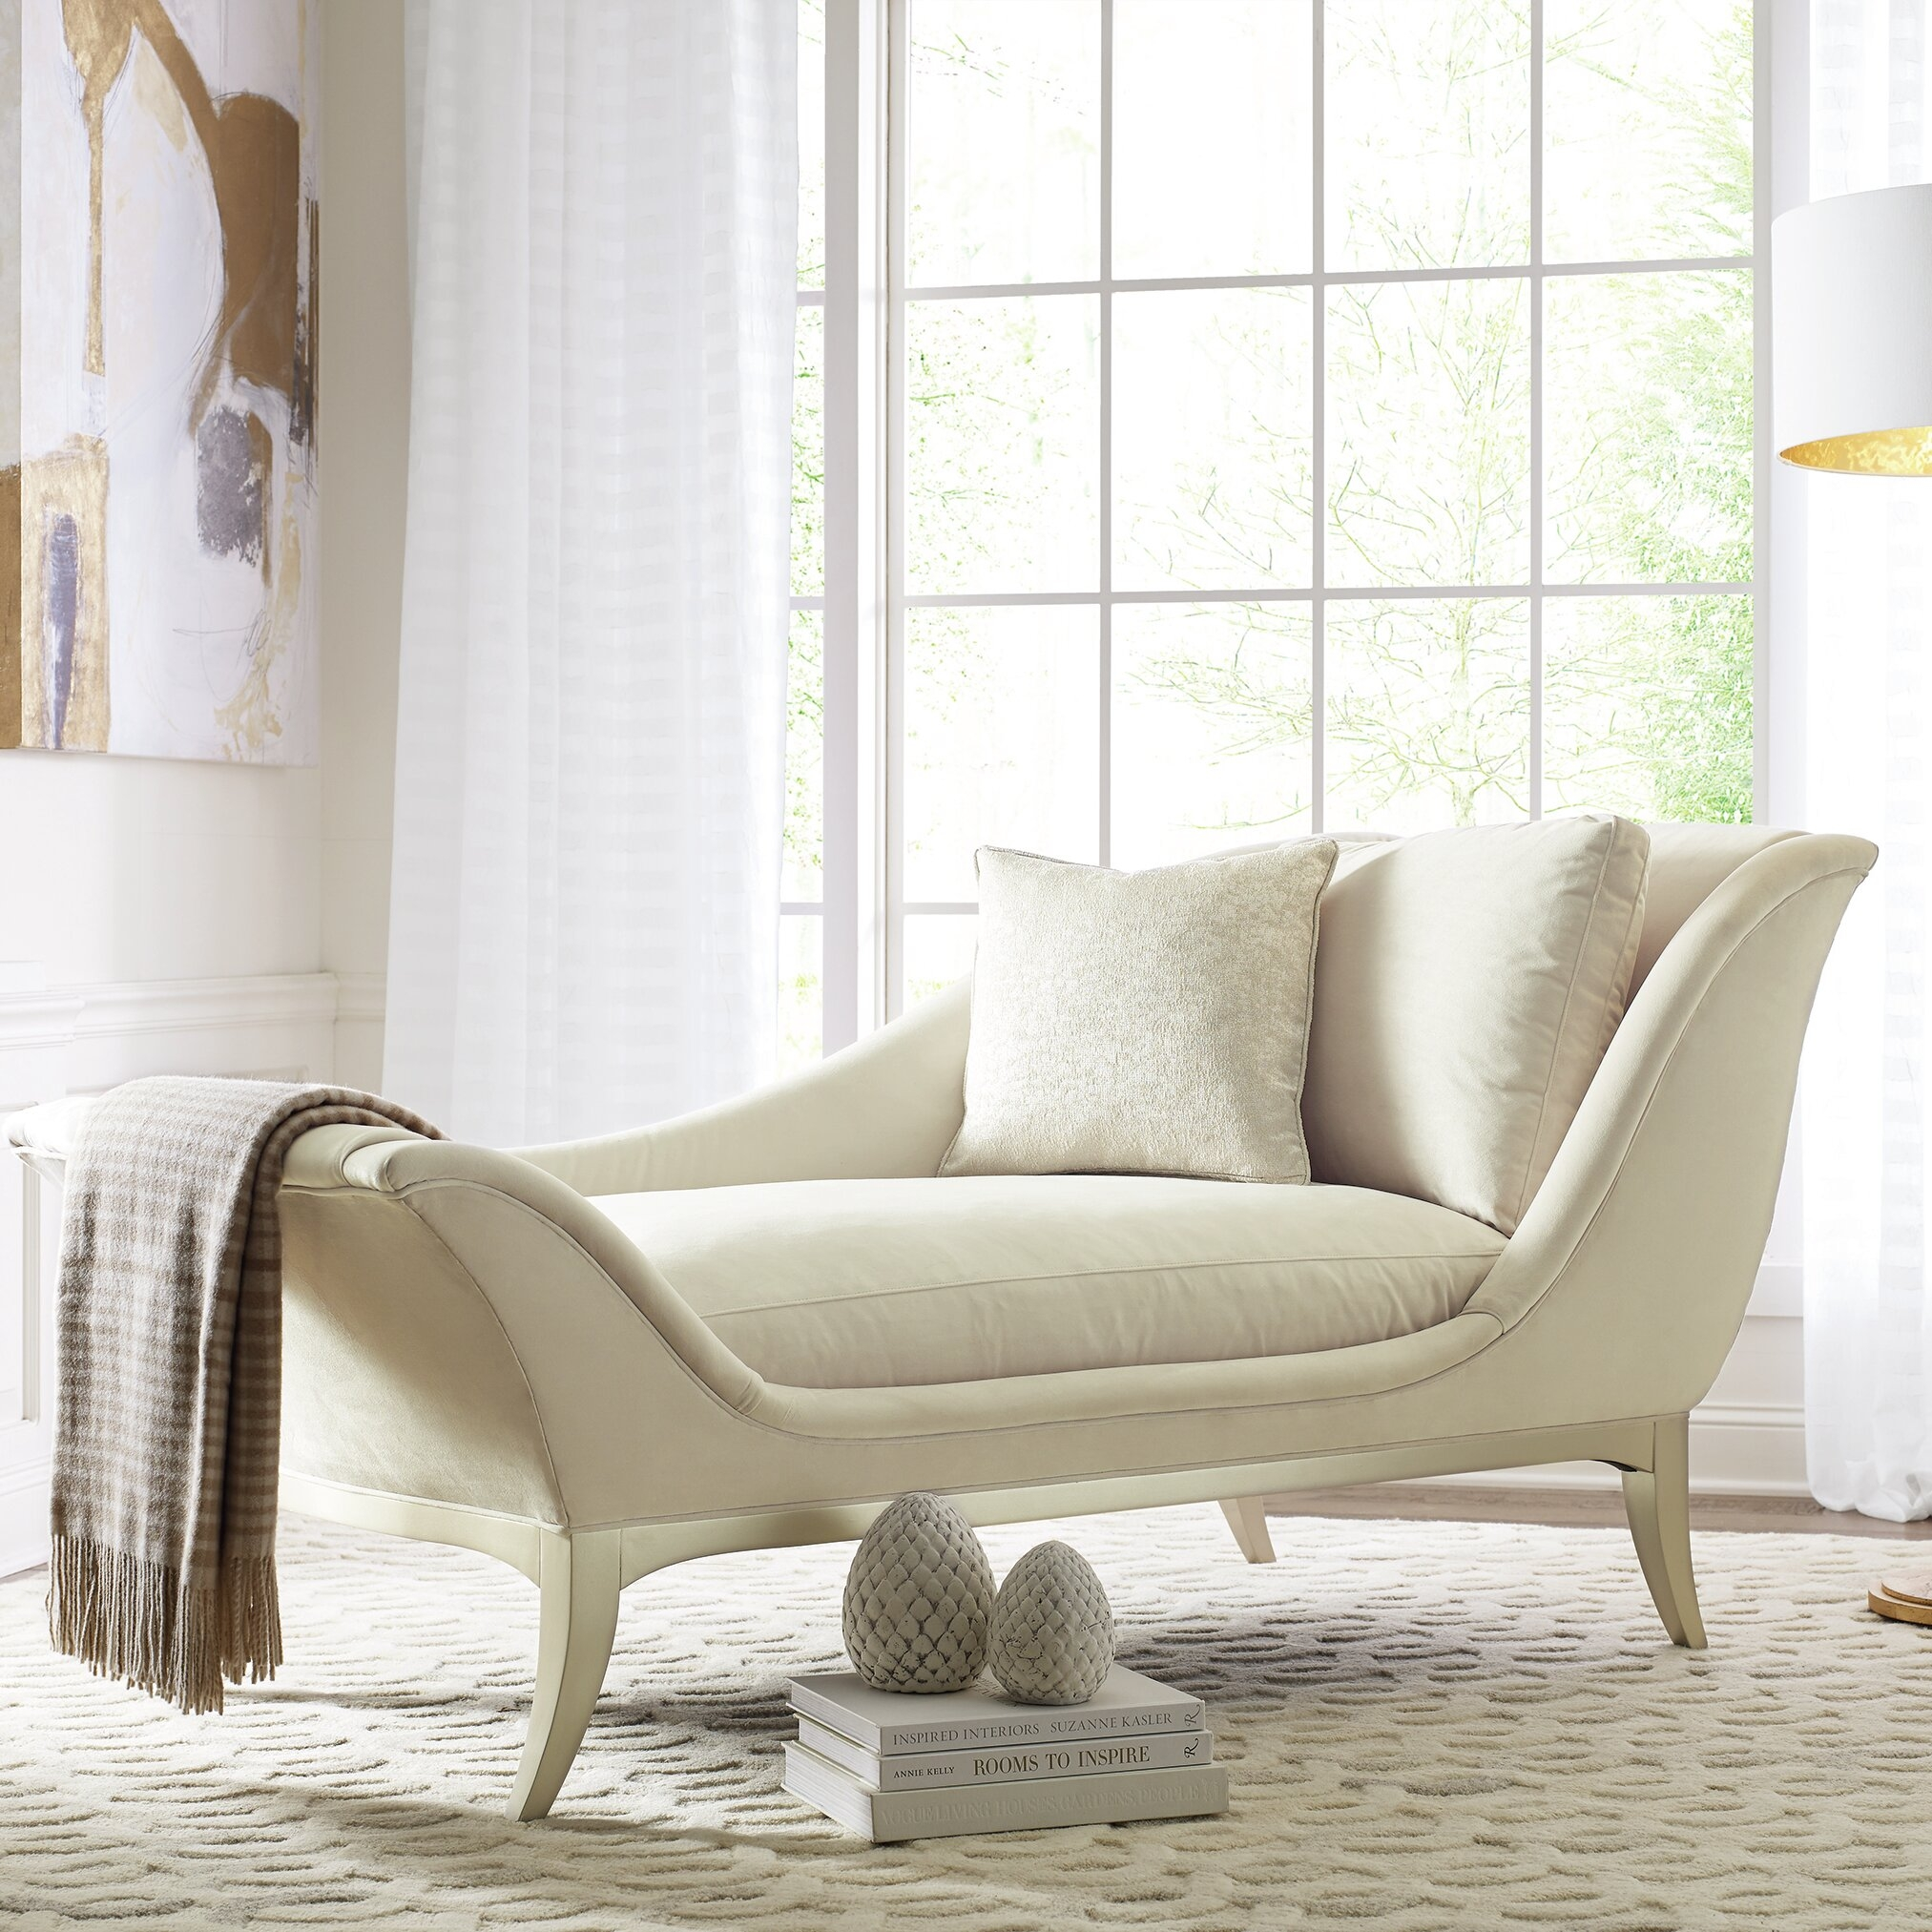 3 Expert Tips To Choose A Chaise Lounge Chair Visualhunt